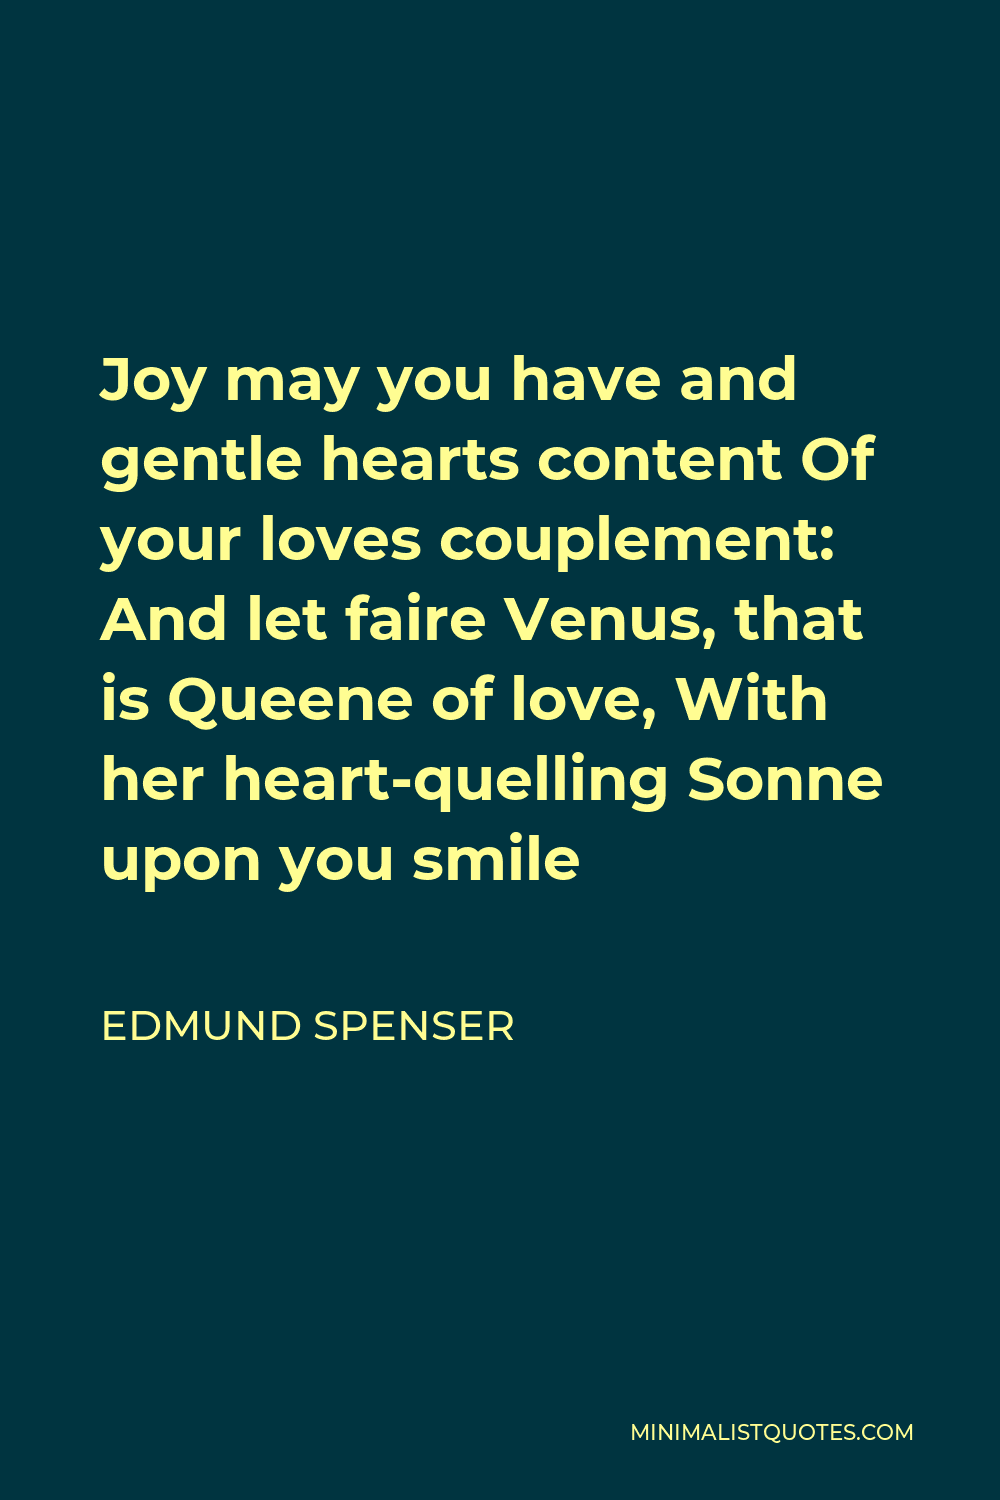 Edmund Spenser Quote - Joy may you have and gentle hearts content Of your loves couplement: And let faire Venus, that is Queene of love, With her heart-quelling Sonne upon you smile